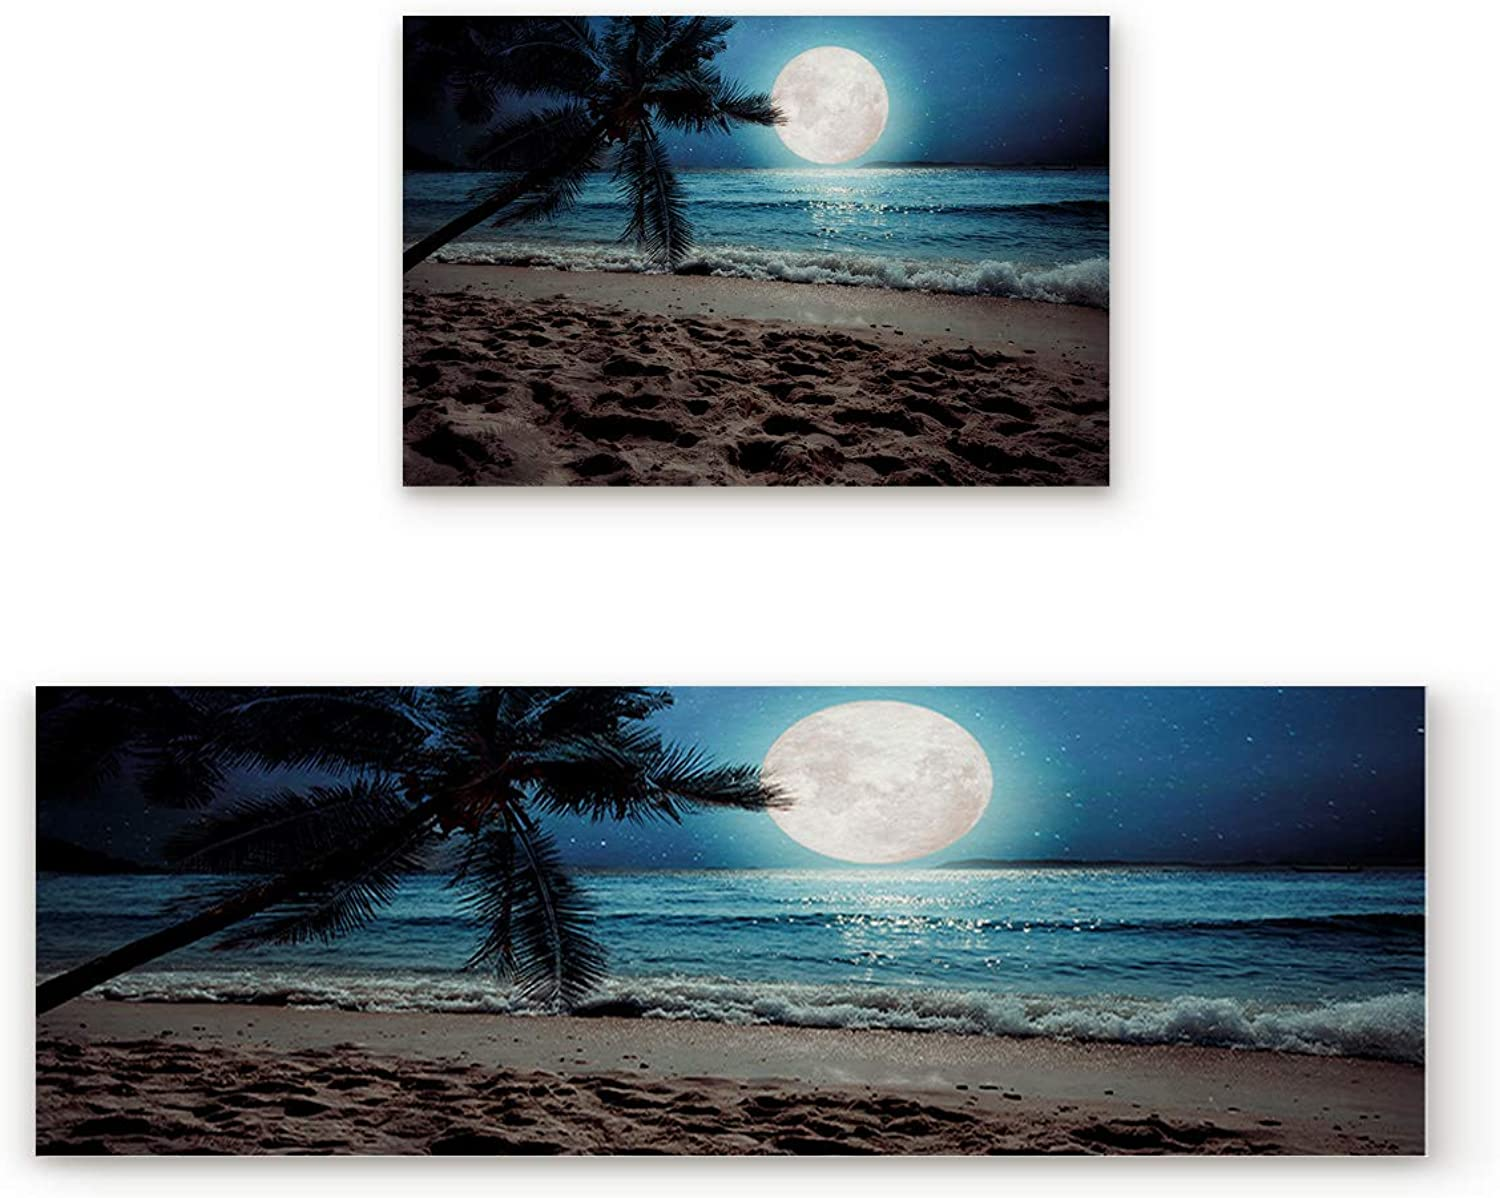 SODIKA Non Slip Kitchen Rug Set 2 Piece, Floor Mat Carpet Runner,Coconut Tree Moon Ocean Wave Night Beach Scenery (19.7x31.5in+19.7x63 inches)